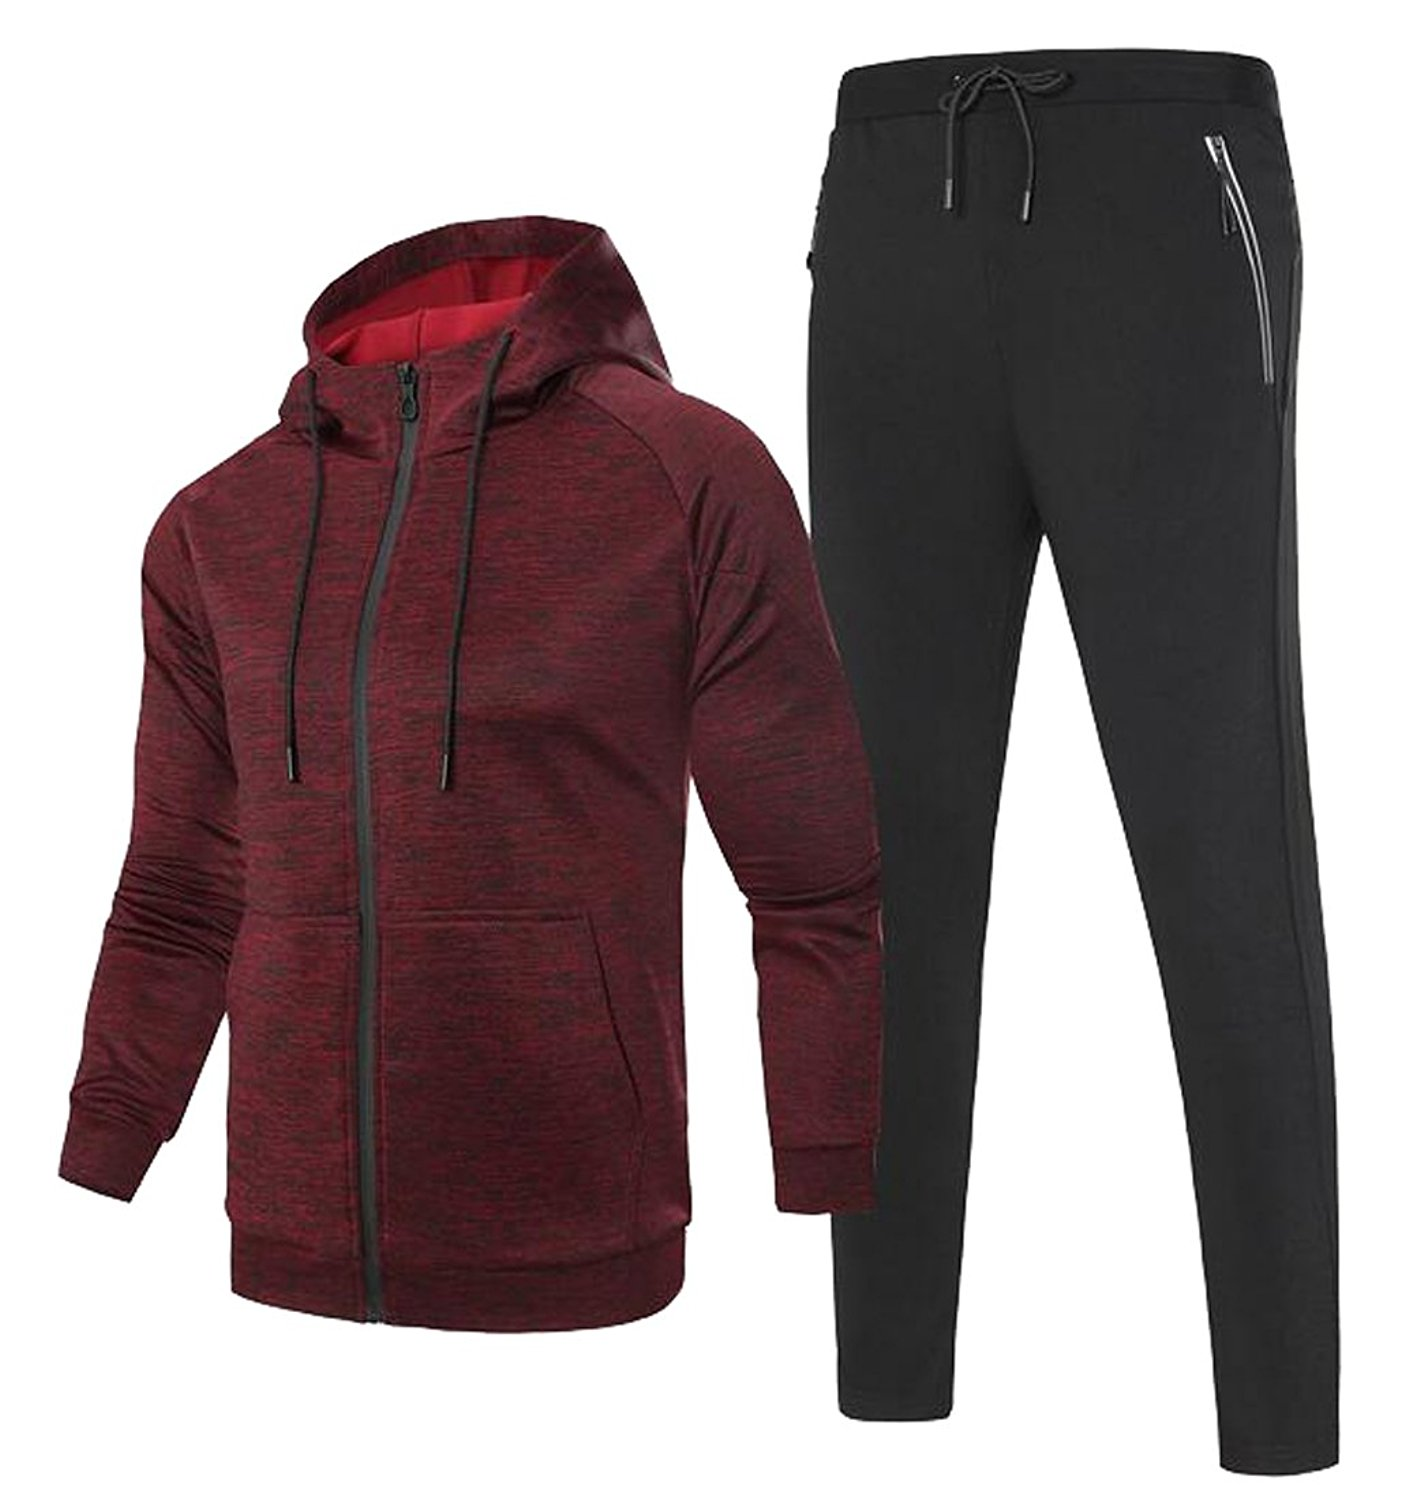 ONTBYB Mens Bodybuilding Hoodie Casual Sport Running Jogger Pullover